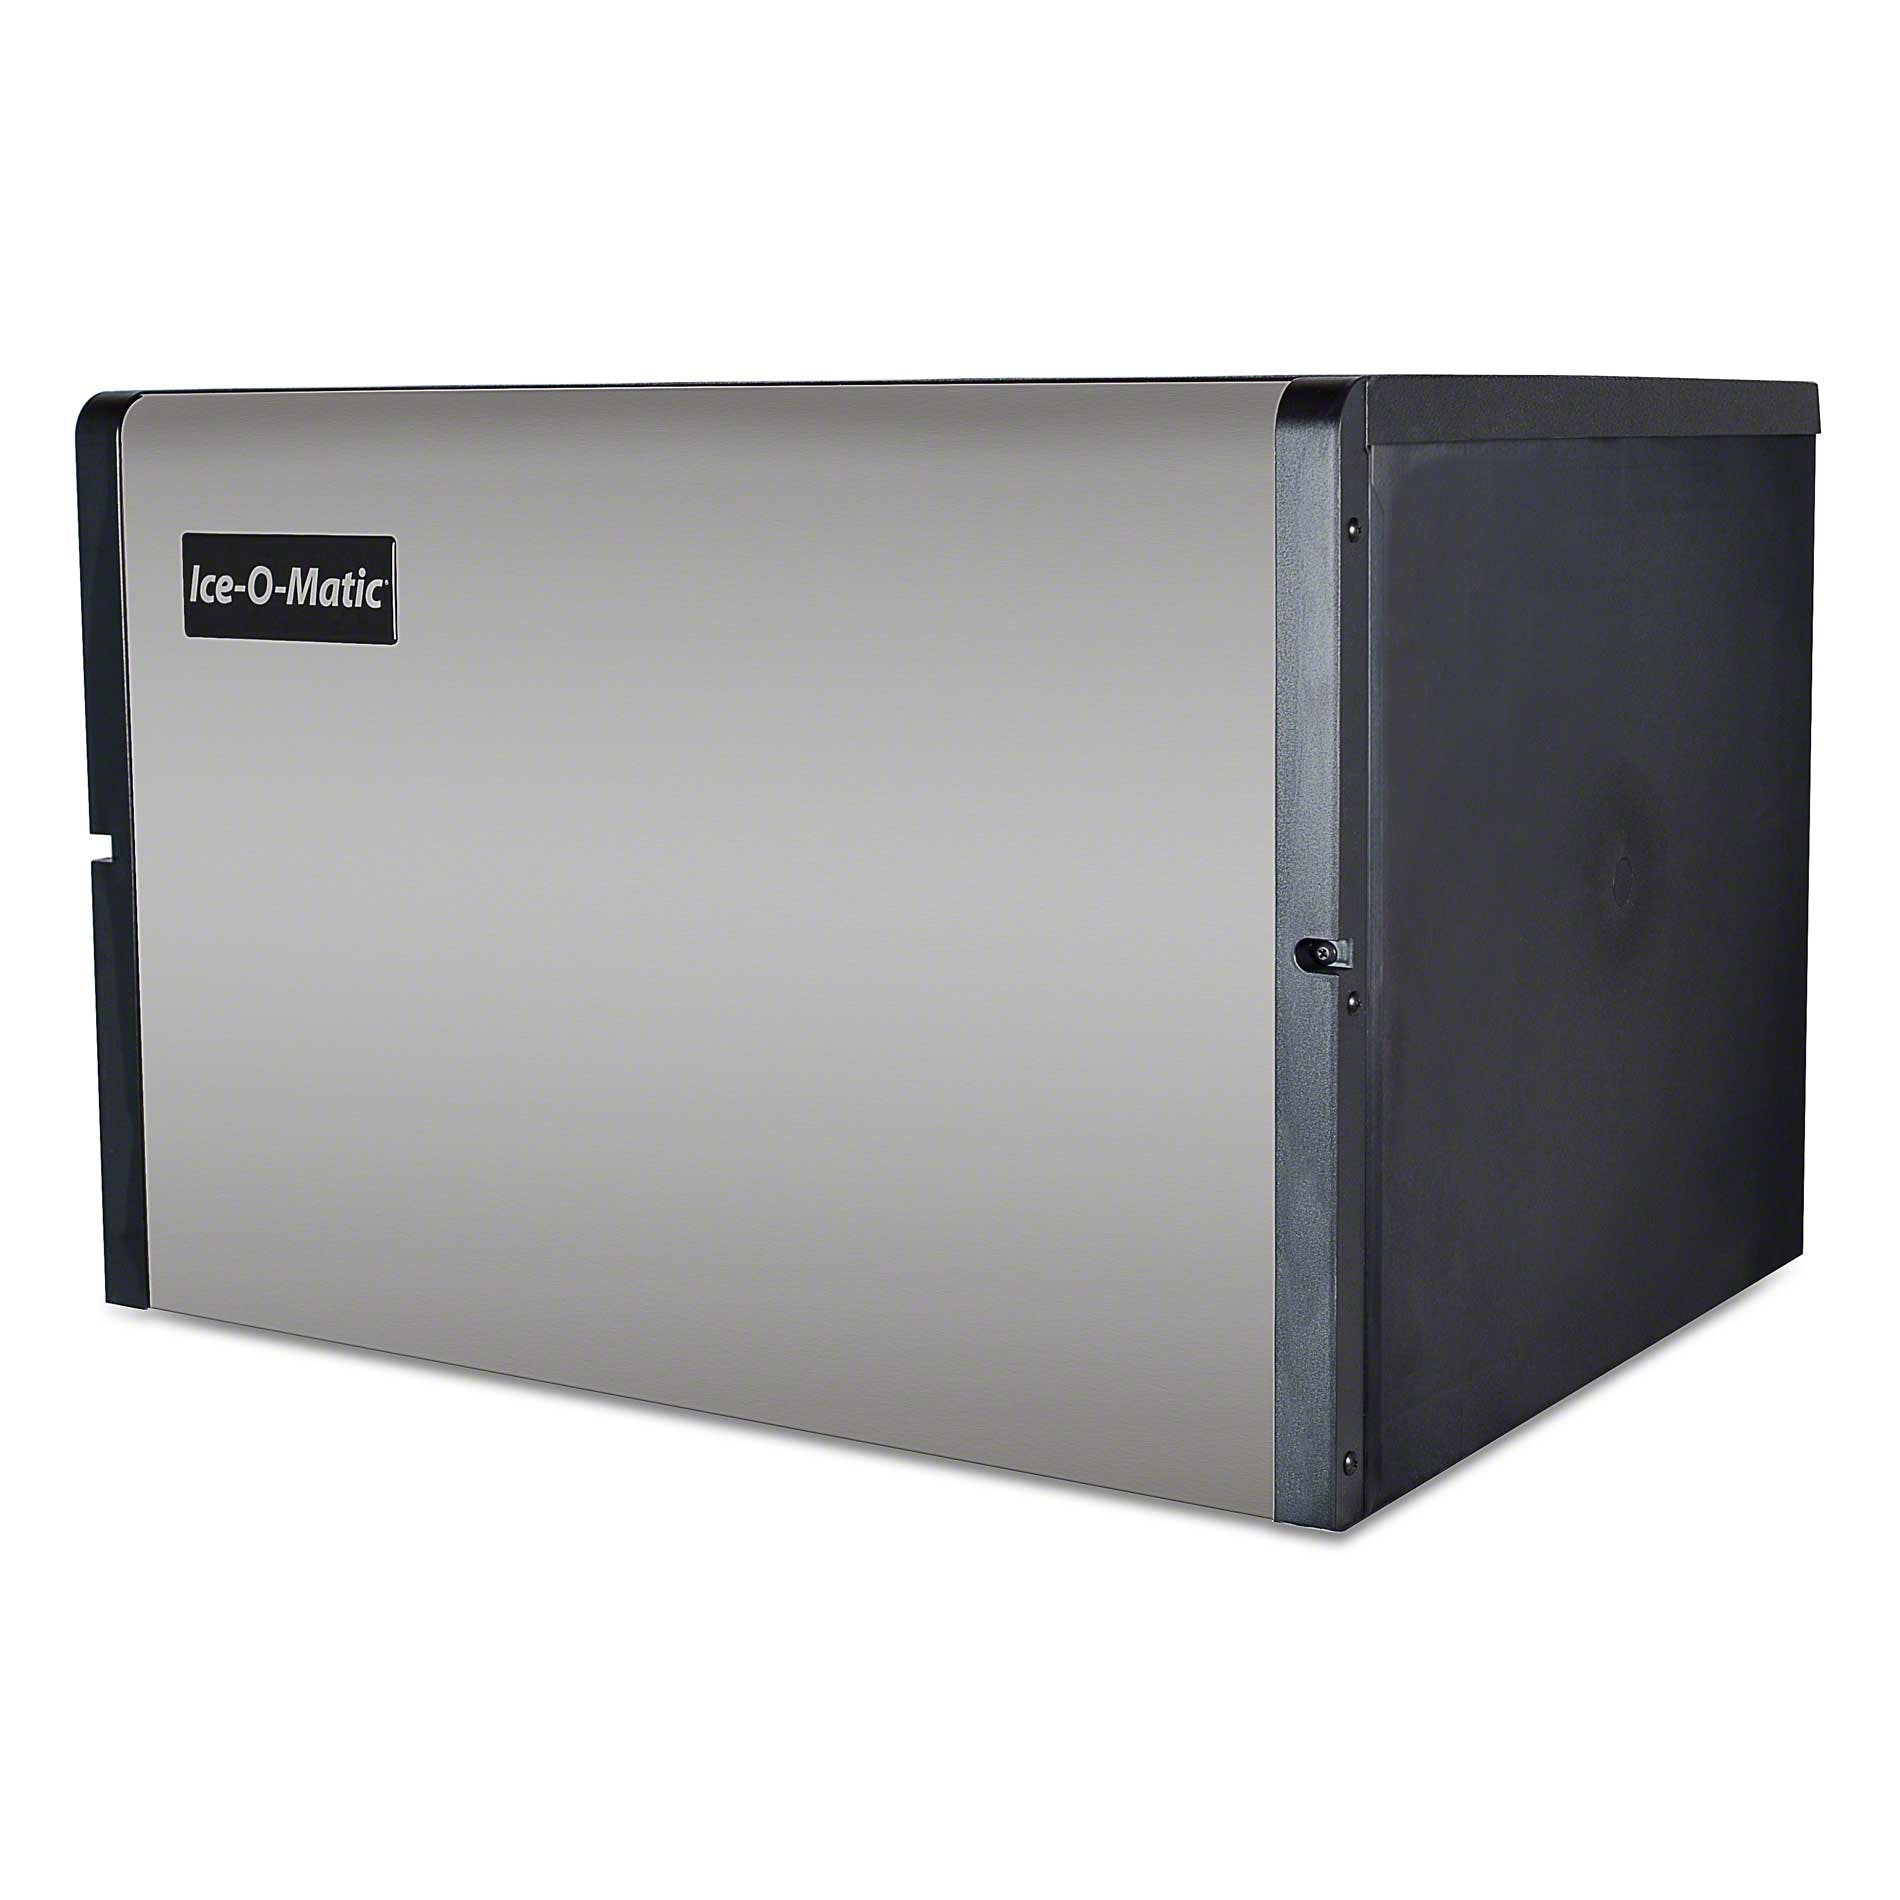 Ice-O-Matic - ICE0606HW 619 lb Half Cube Ice Machine Ice machine sold by Food Service Warehouse